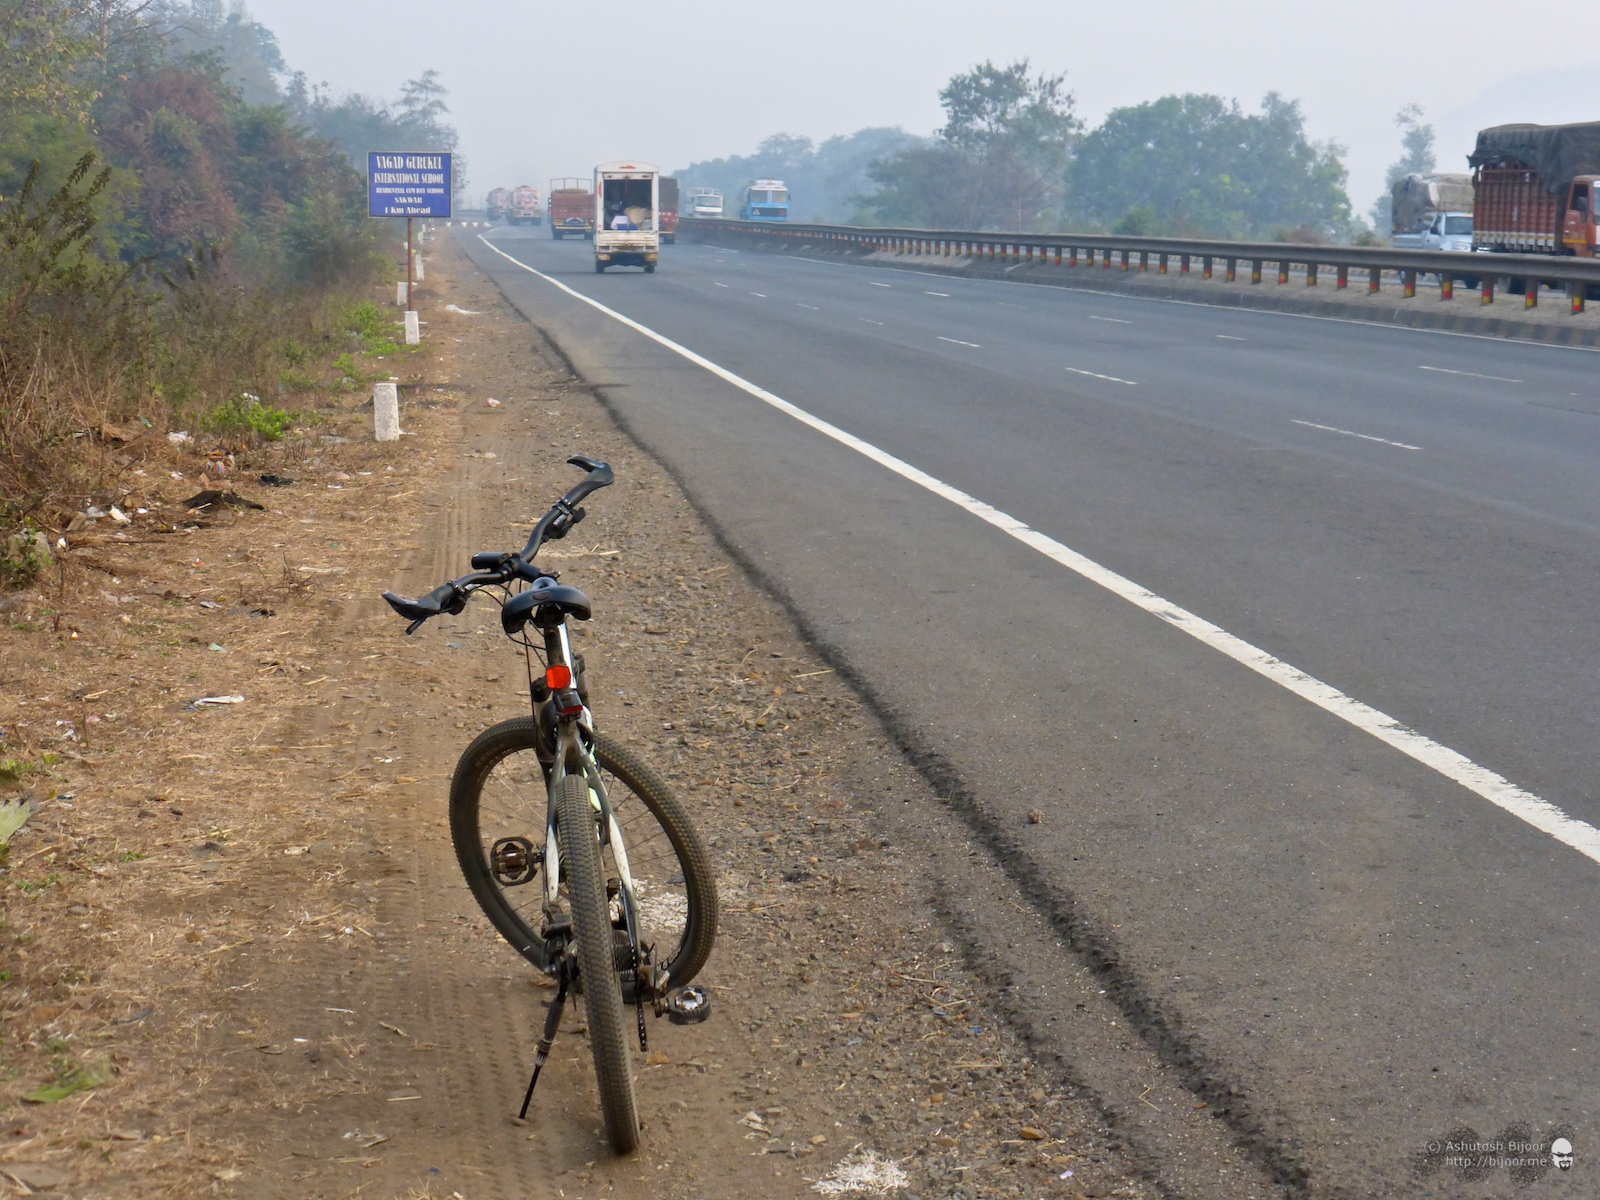 The distance from Andheri to Vandri Lake is just under 70 km, and most of the distance is on the excellent road of NH8